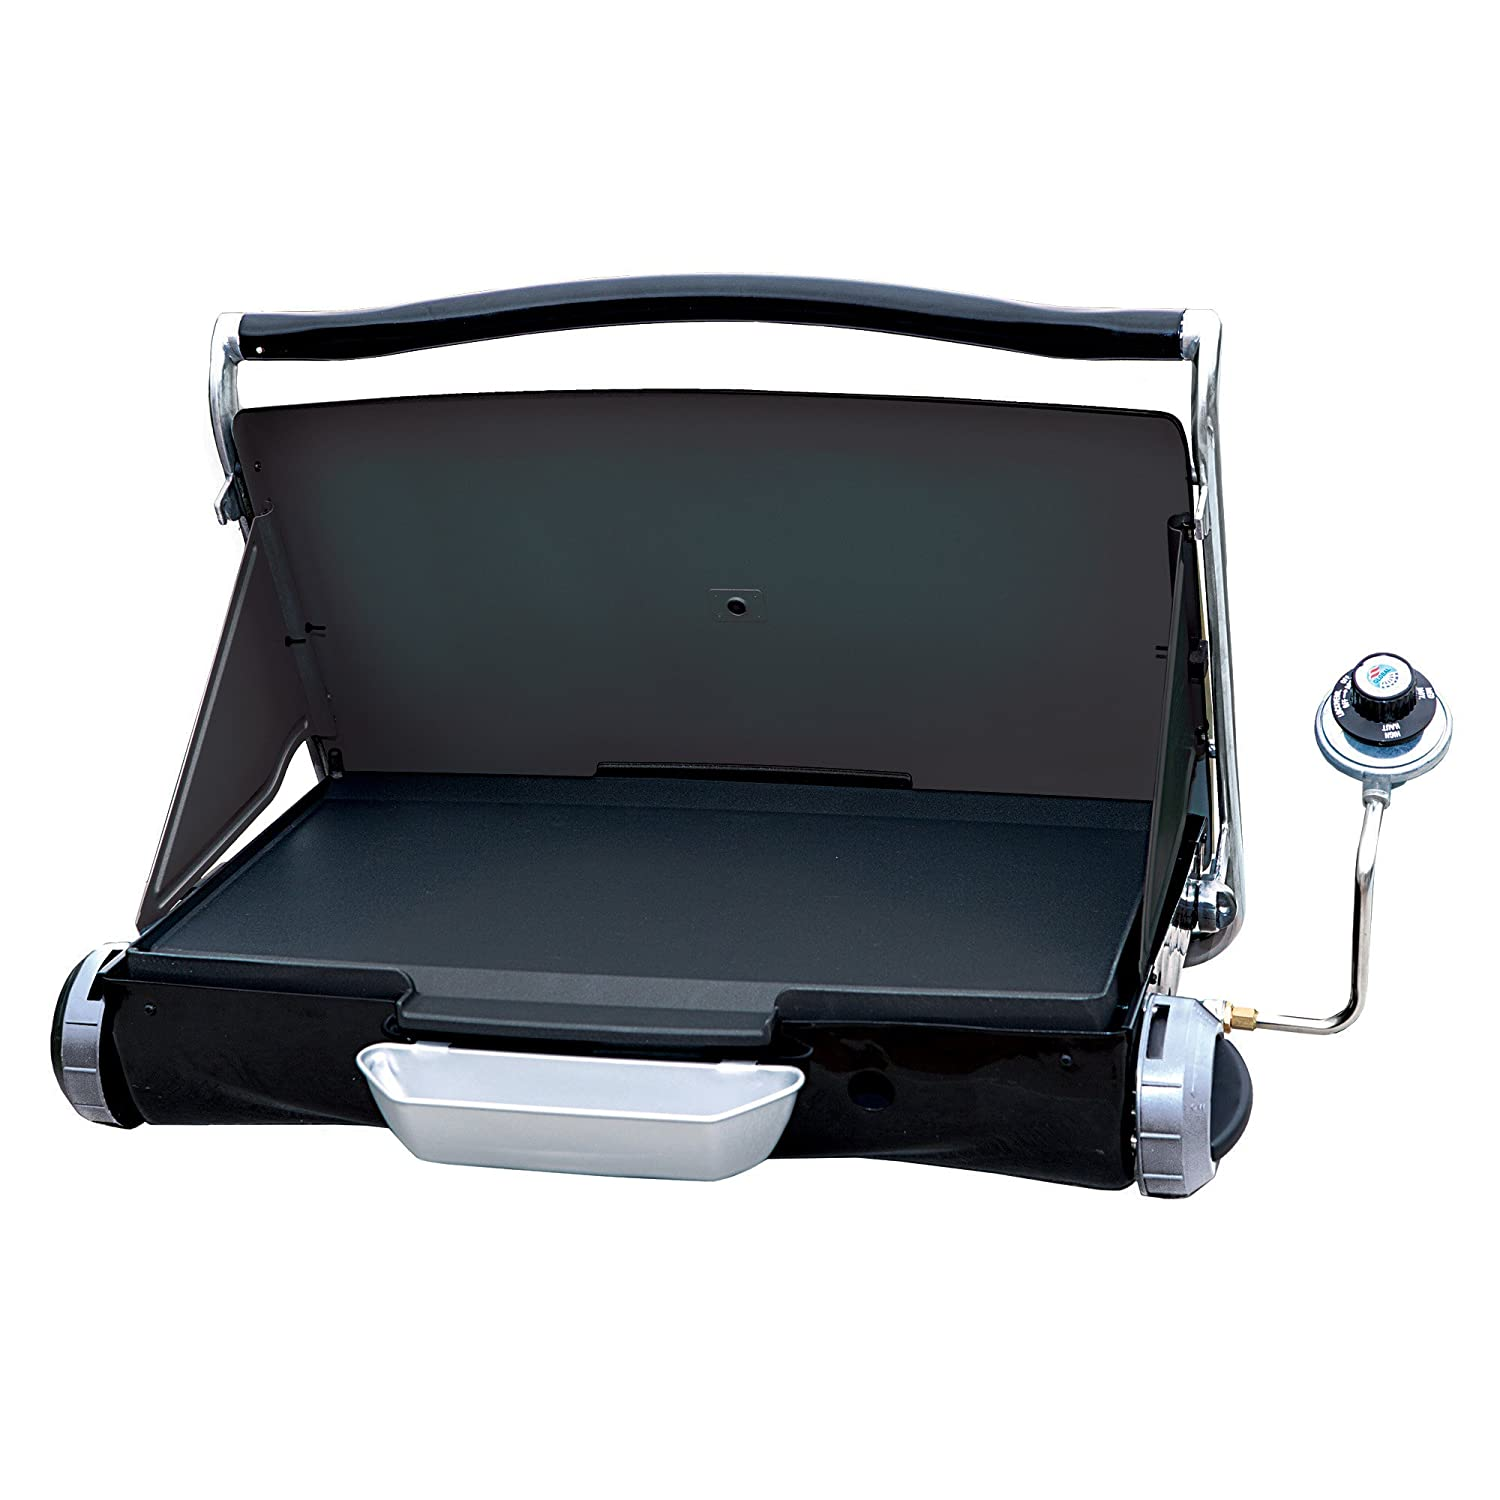 Portable Gas Grill And Griddle ~ Top portable gas grills for tailgating